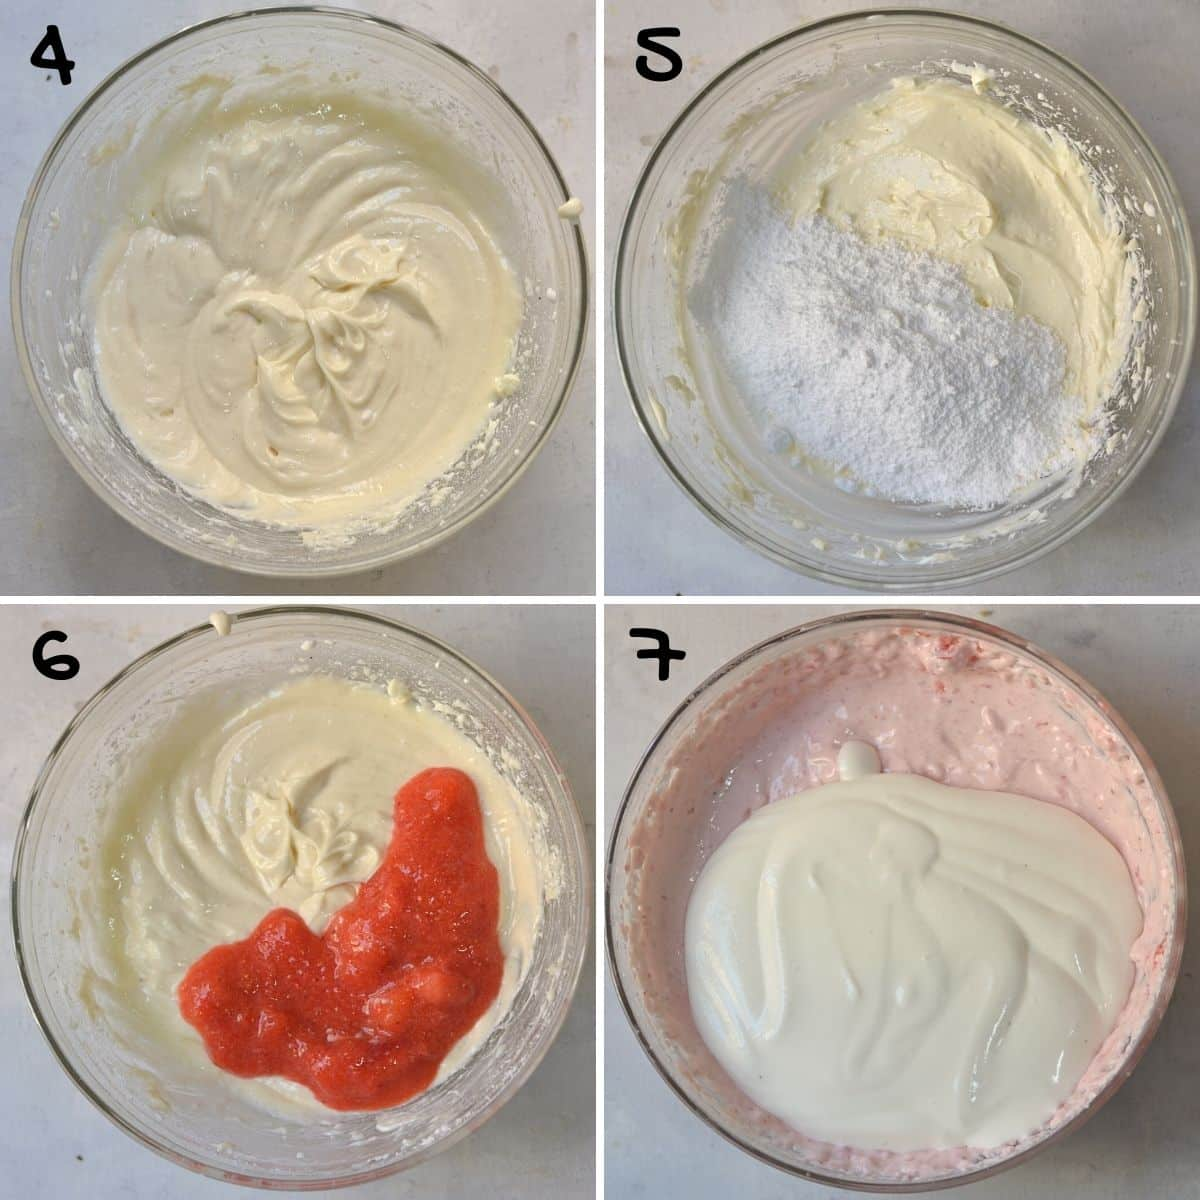 A collage of 4 images showing how to make the strawberry cheesecake layer.